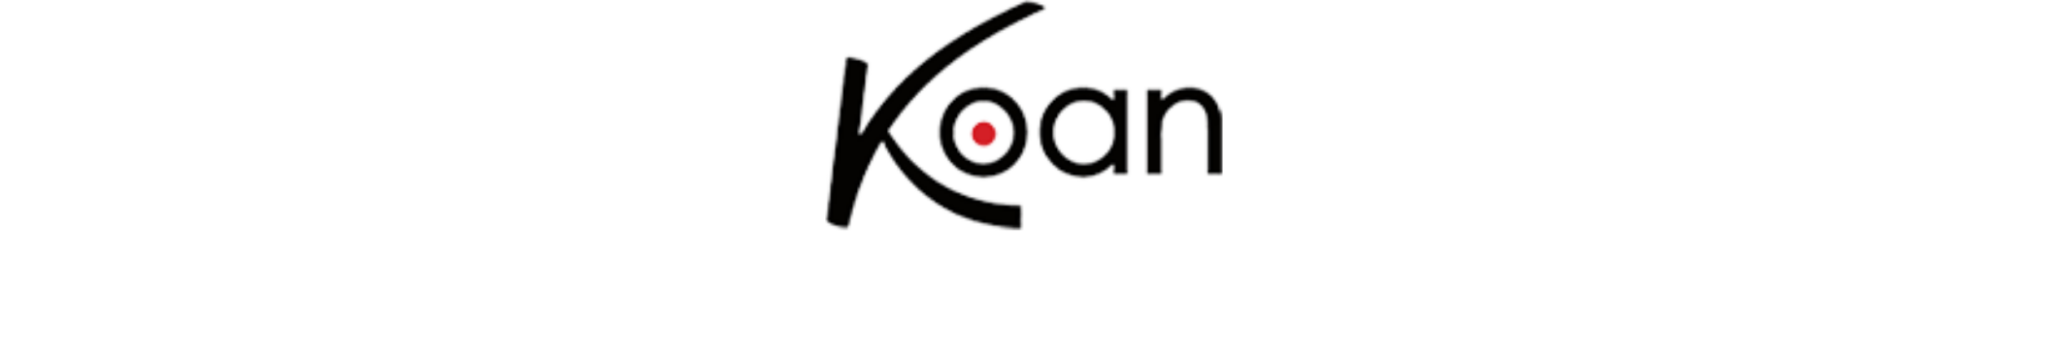 koan digital learning